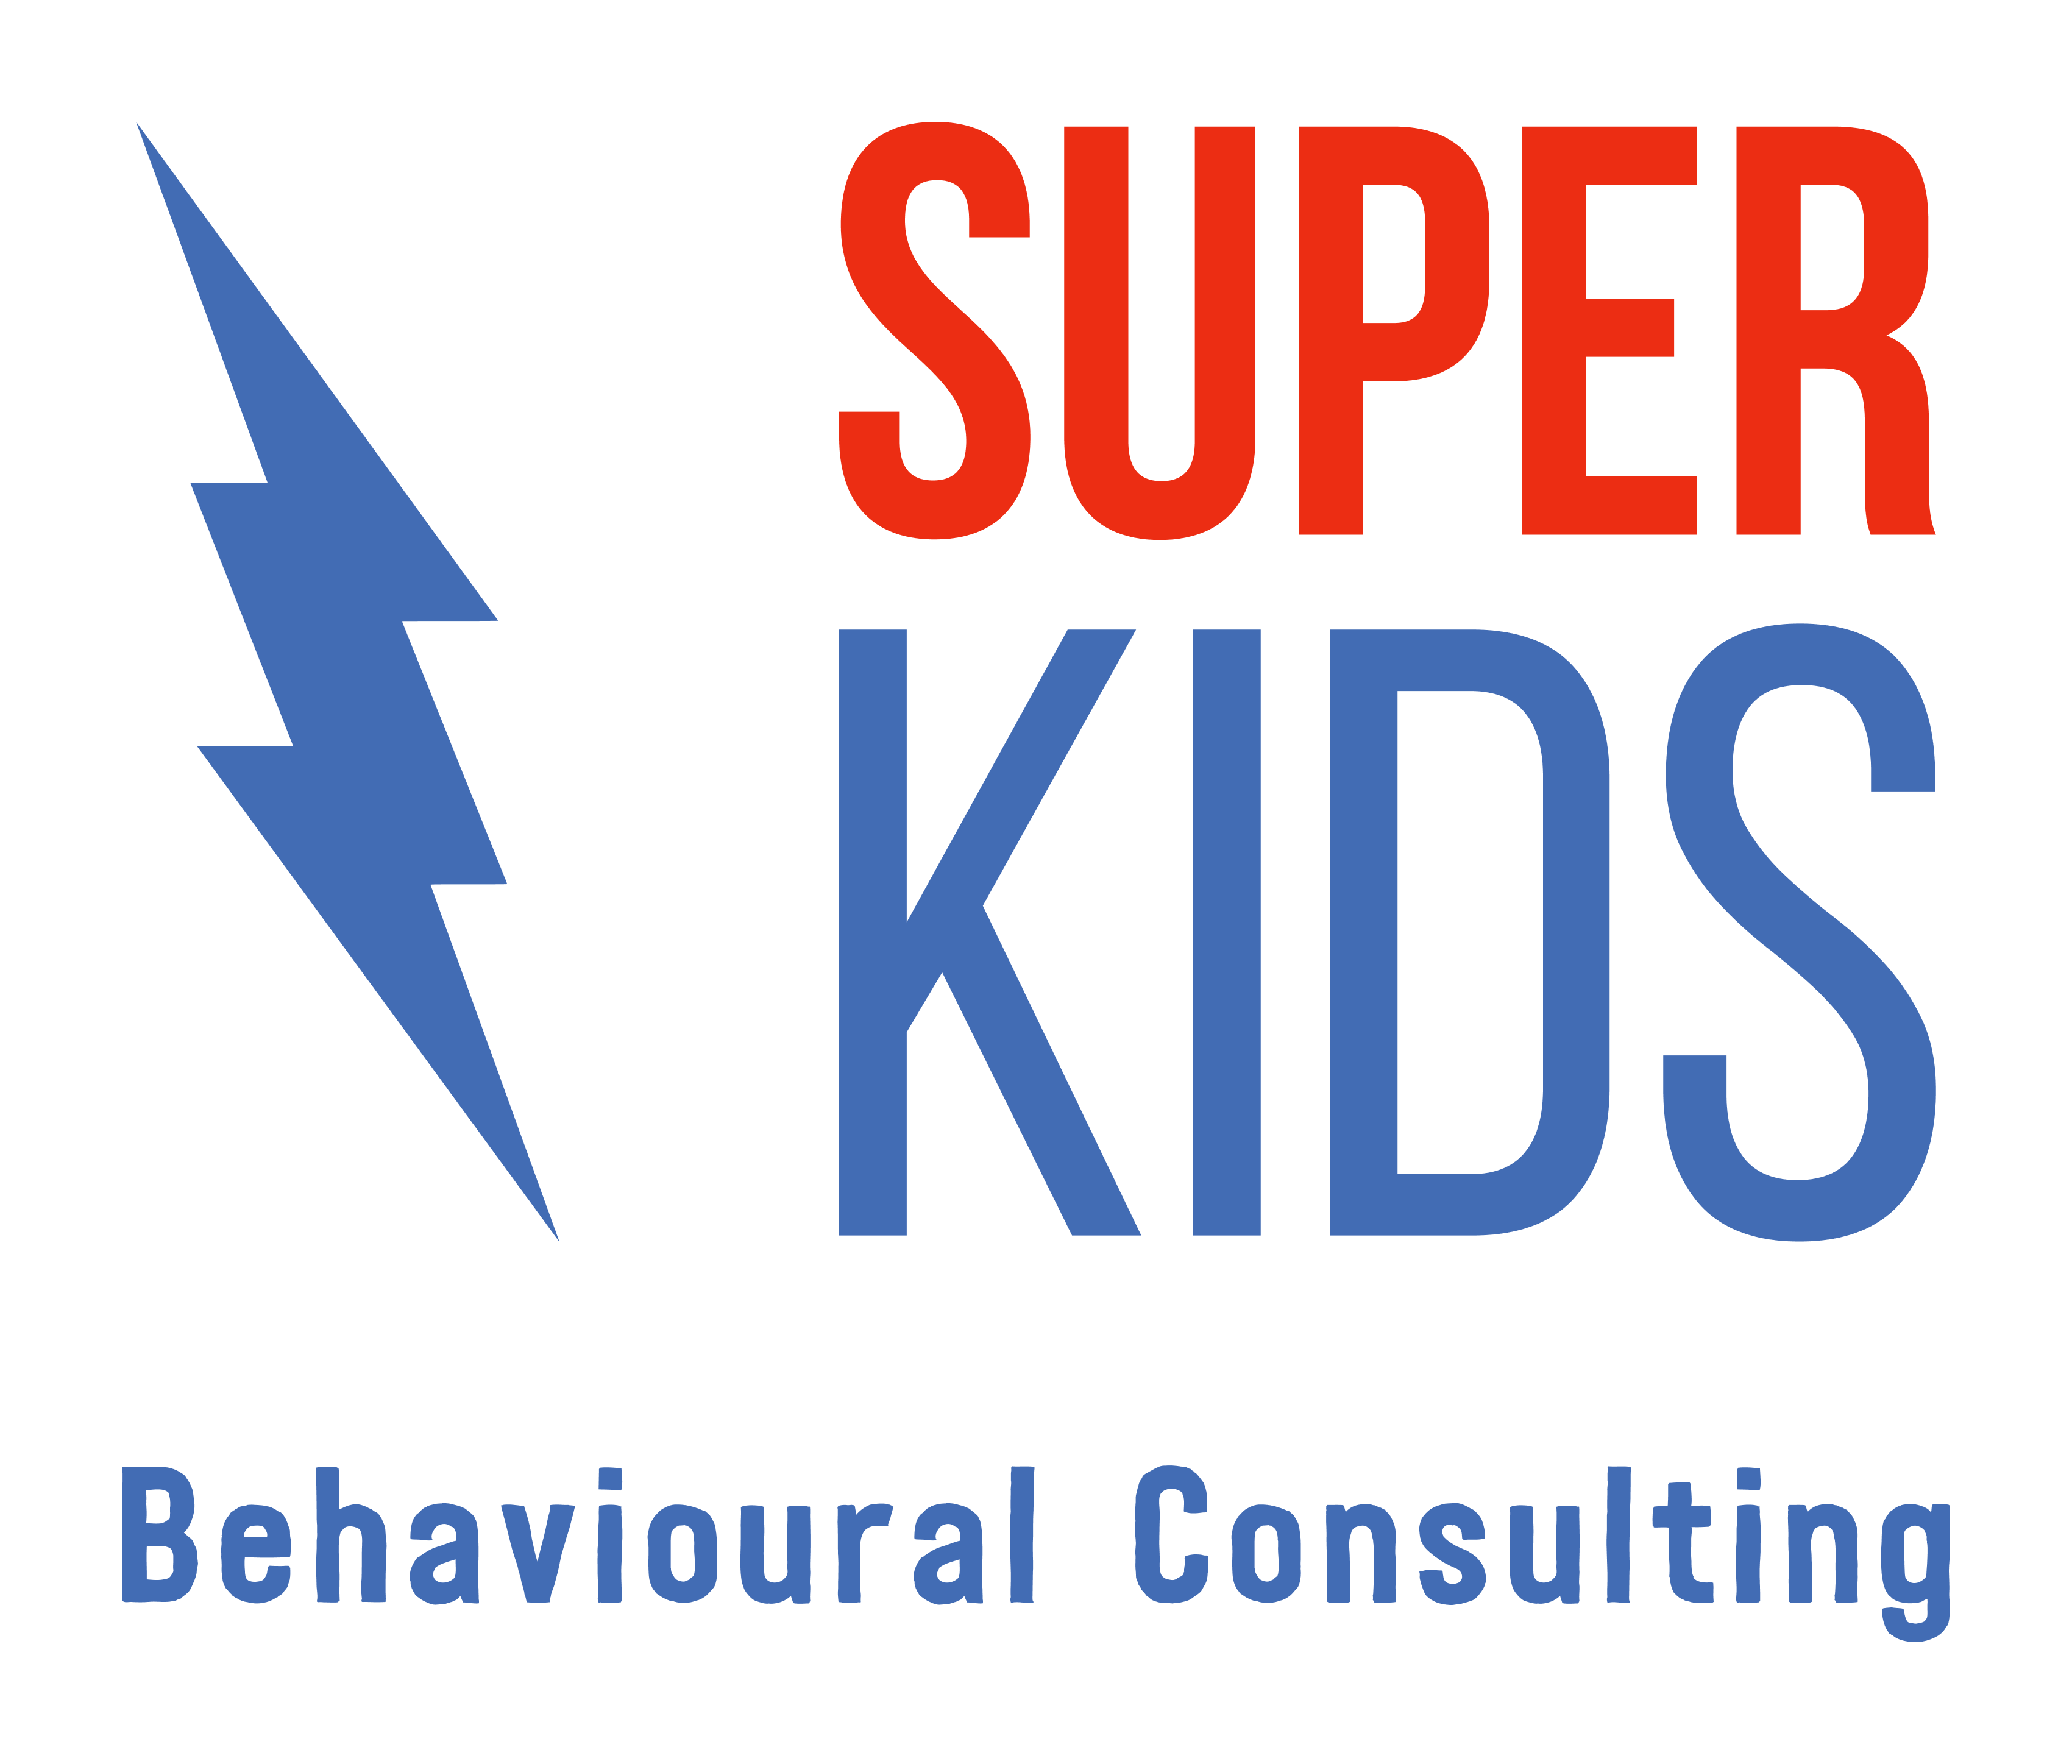 Super Kids Behavioural Consulting